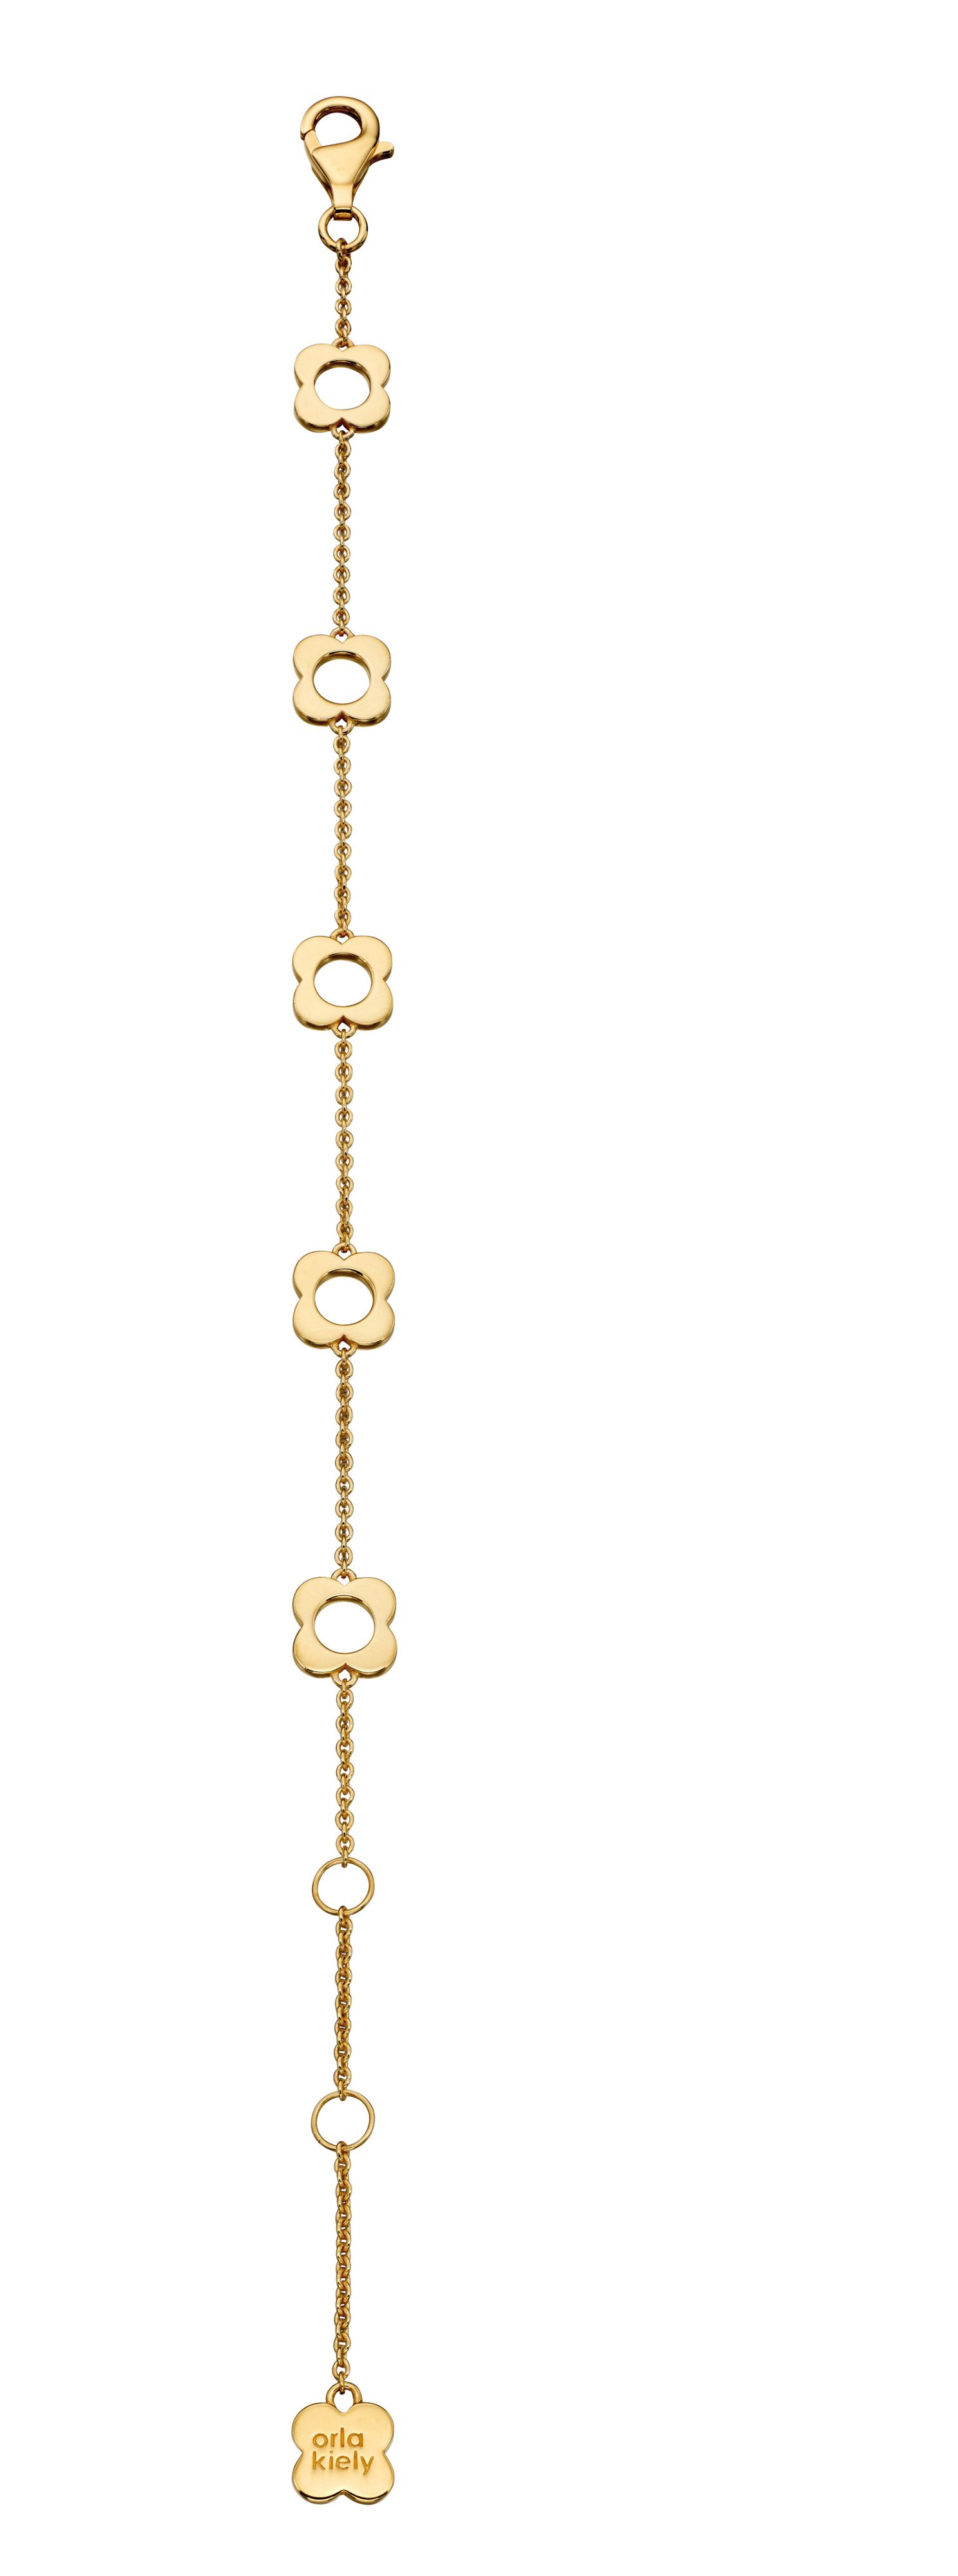 Orla Kiely Four Point Flower Bracelet In Gold, Gold